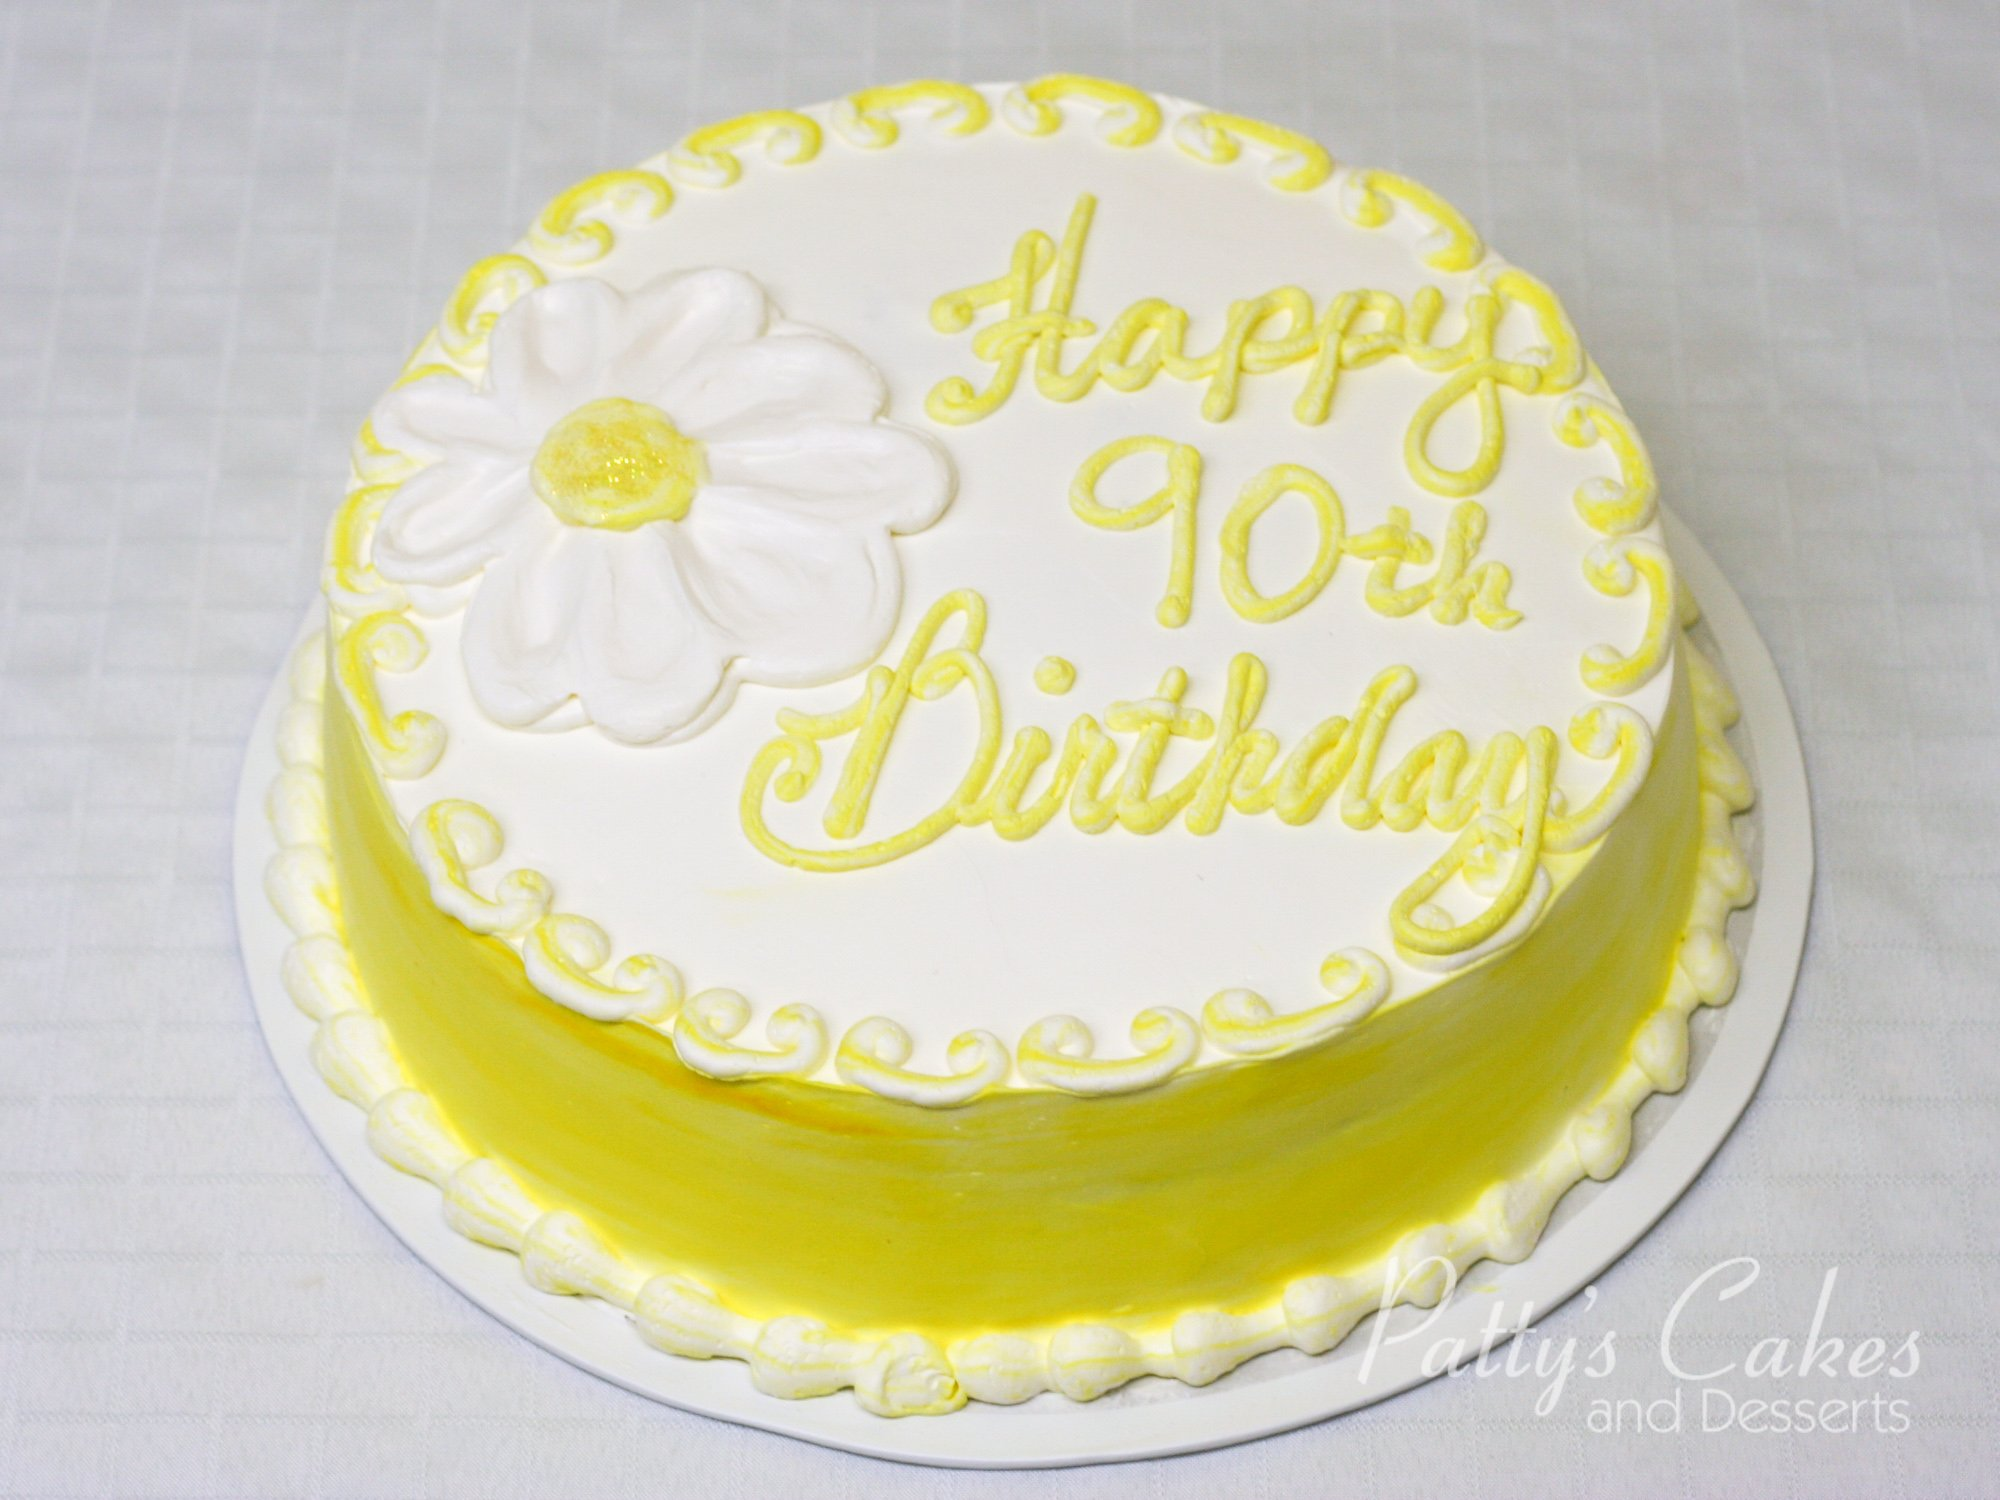 Photo of a yellow 90th birthday cake round - Patty s Cakes ...